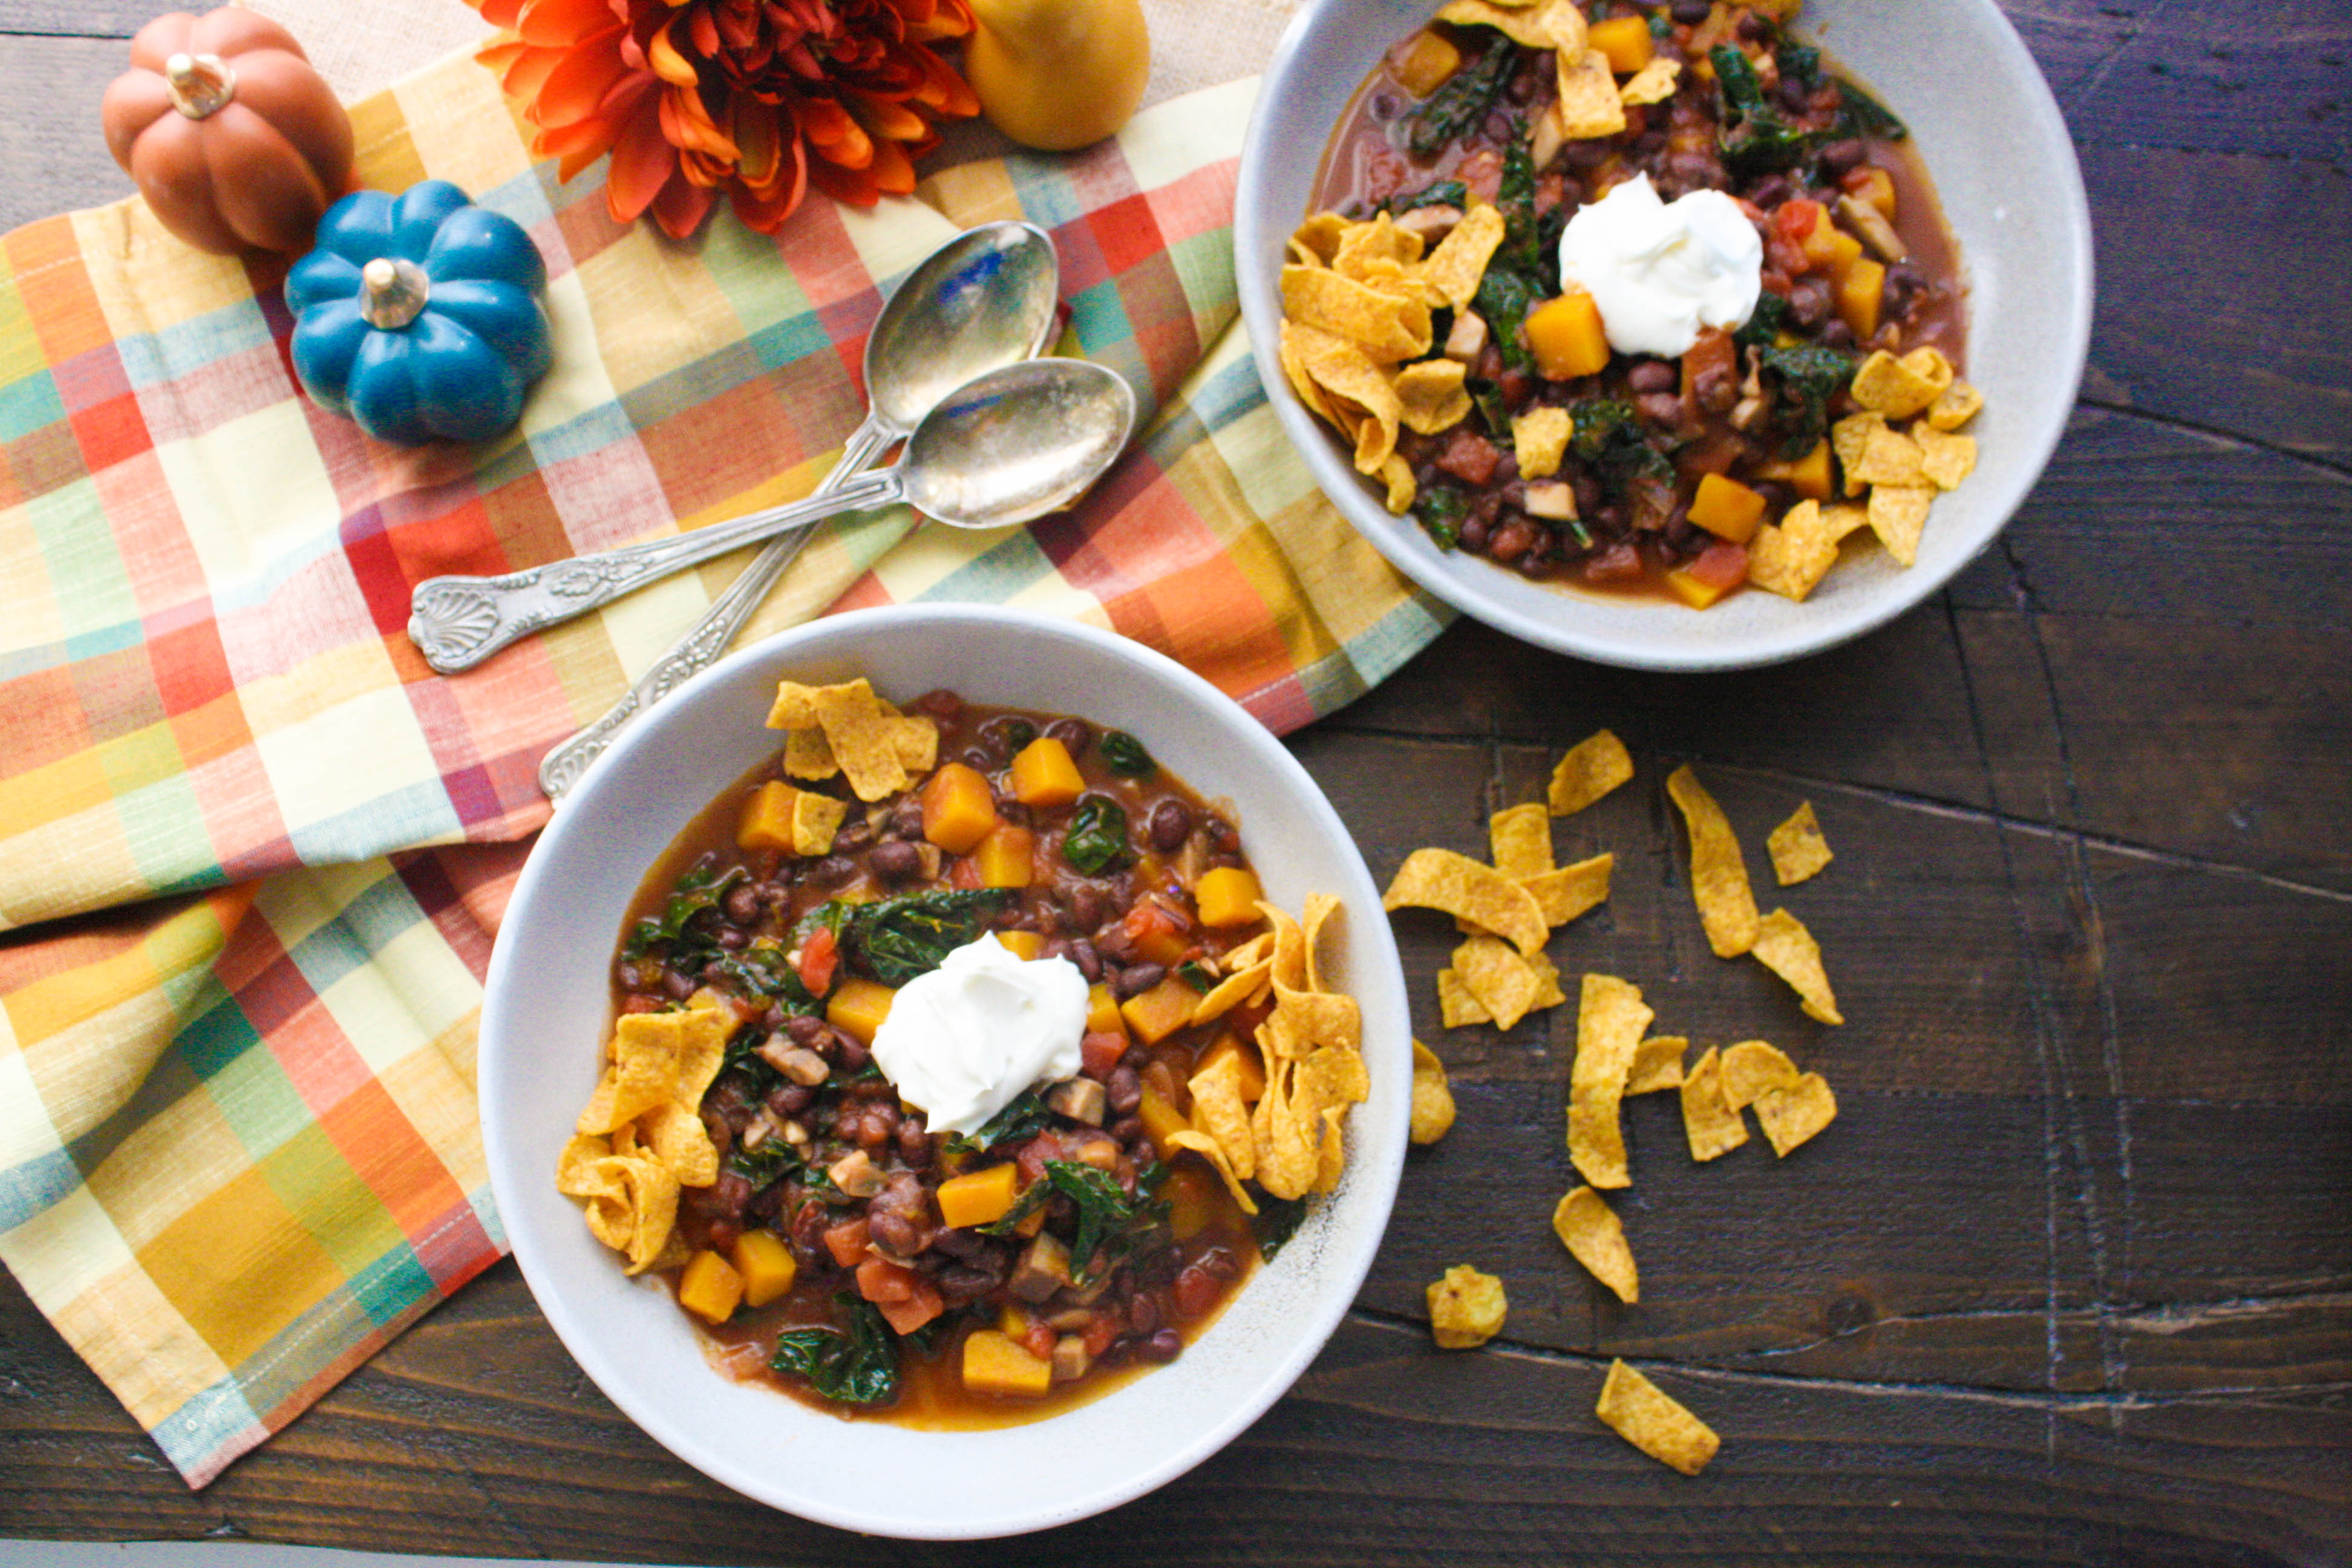 Everyone will love Butternut Squash and Black Bean Chili with Mushrooms & Kale. This recipe for Butternut Squash and Black Bean Chili with Mushrooms & Kale is easy to make, and the result is a tasty meal!